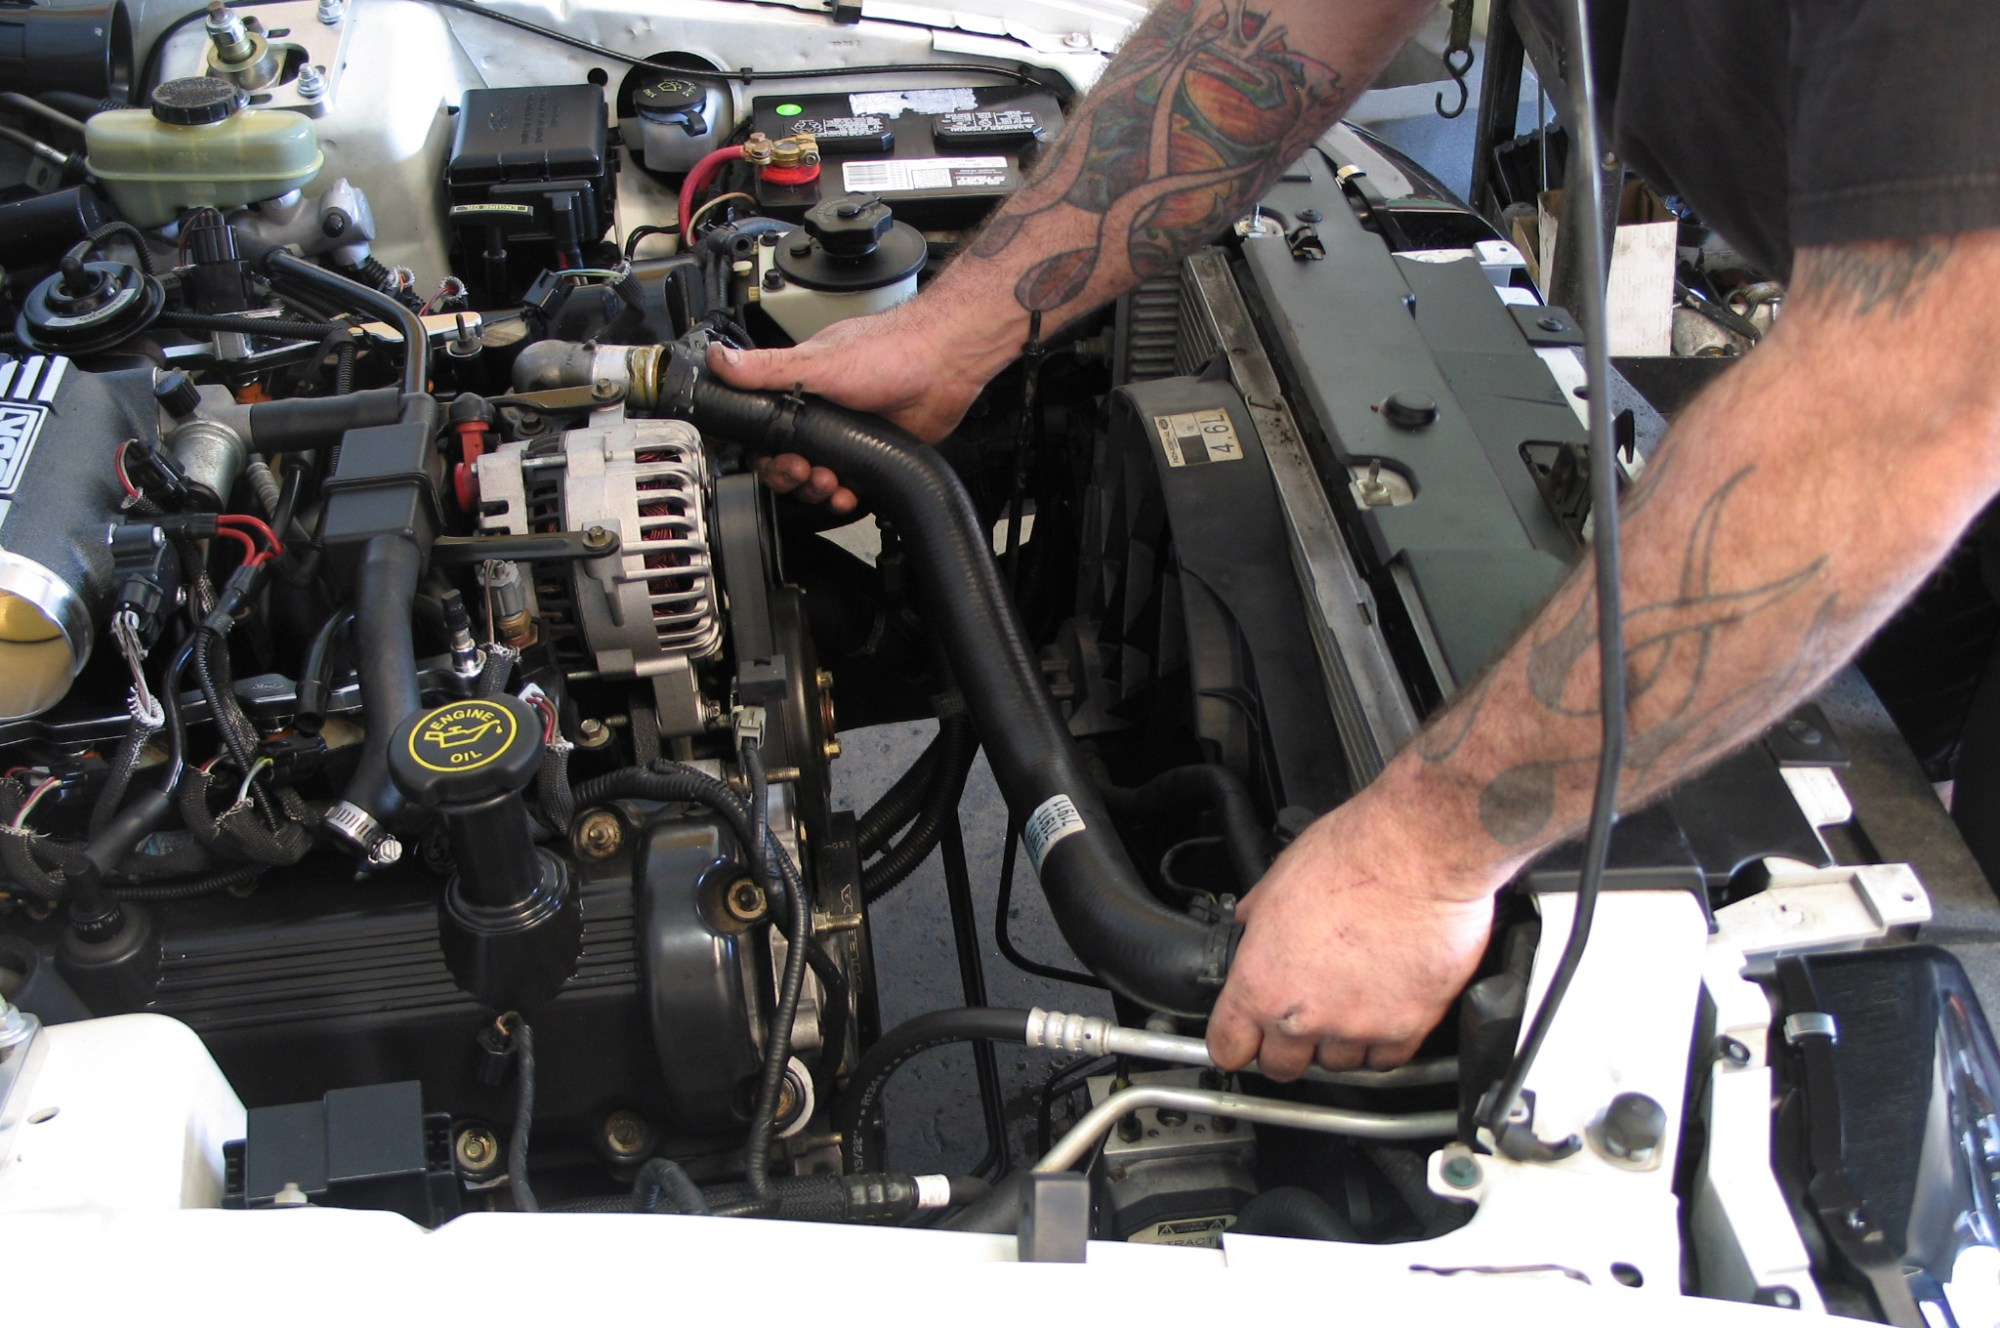 hight resolution of  the top of the engine compartment is next drain a fat gallon of coolant from the system then unbolt the coolant surge tank and upper radiator hose